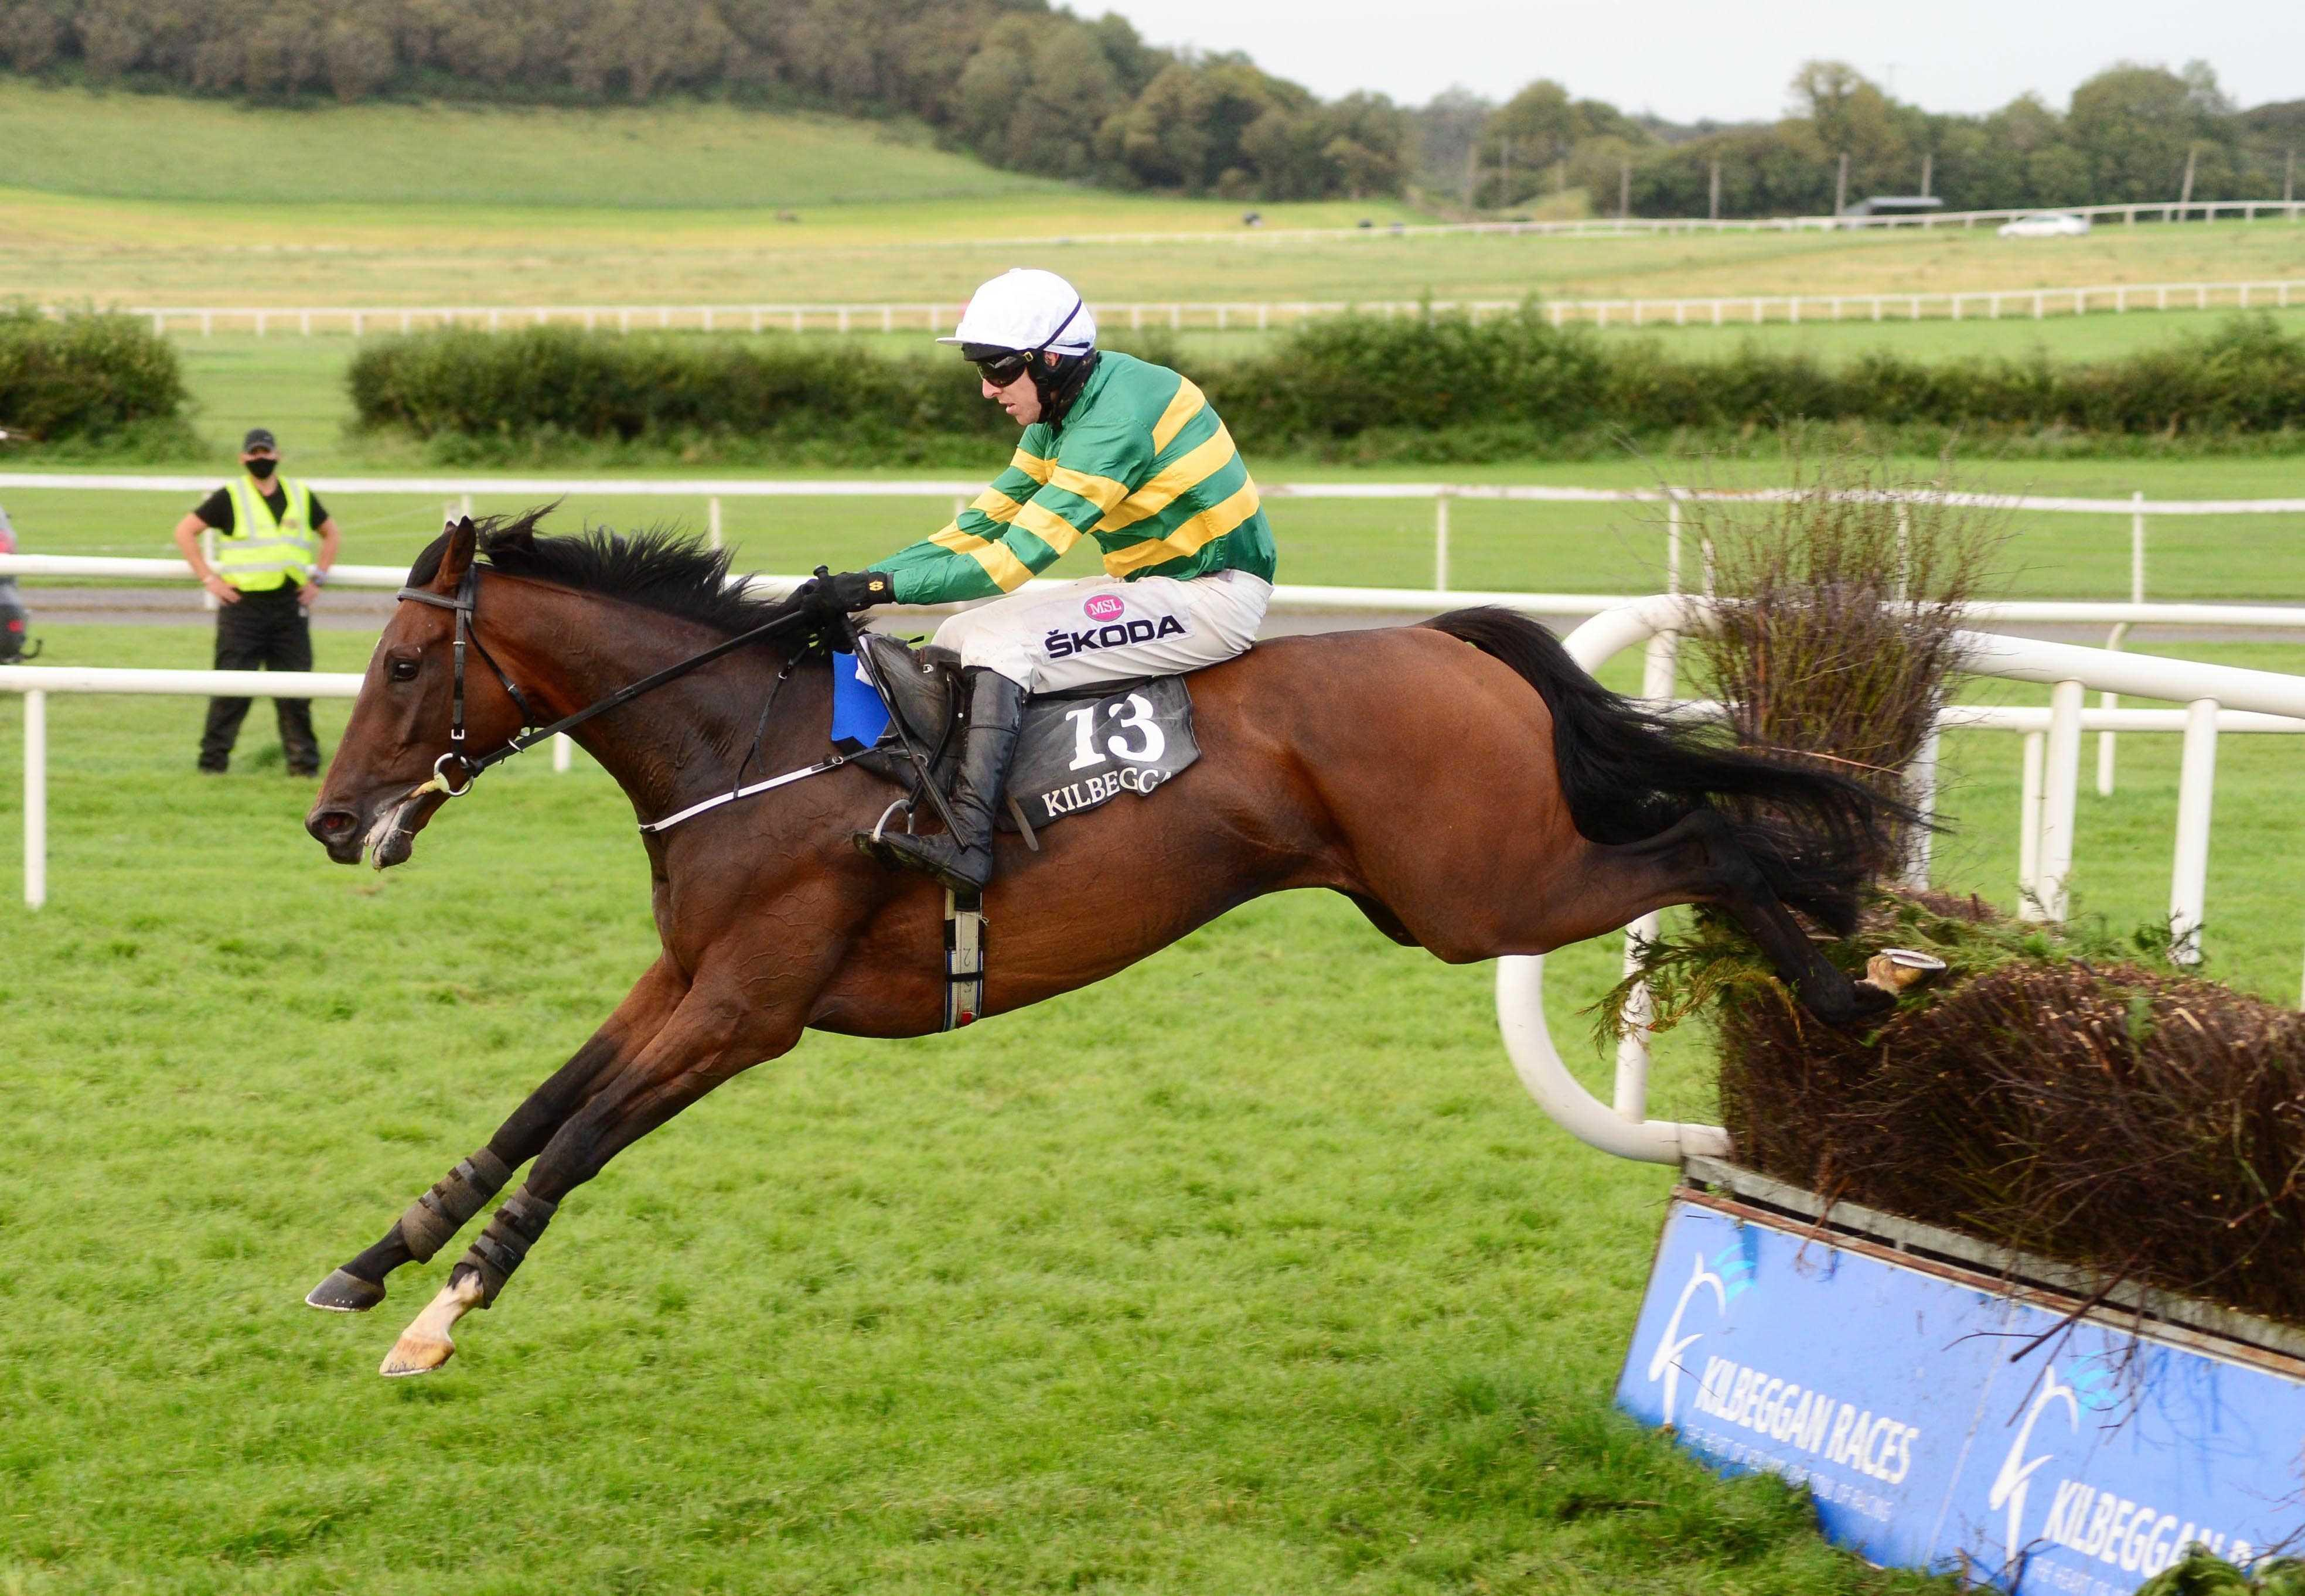 KILBEGGAN FRIDAY: A first win for Wave over fences